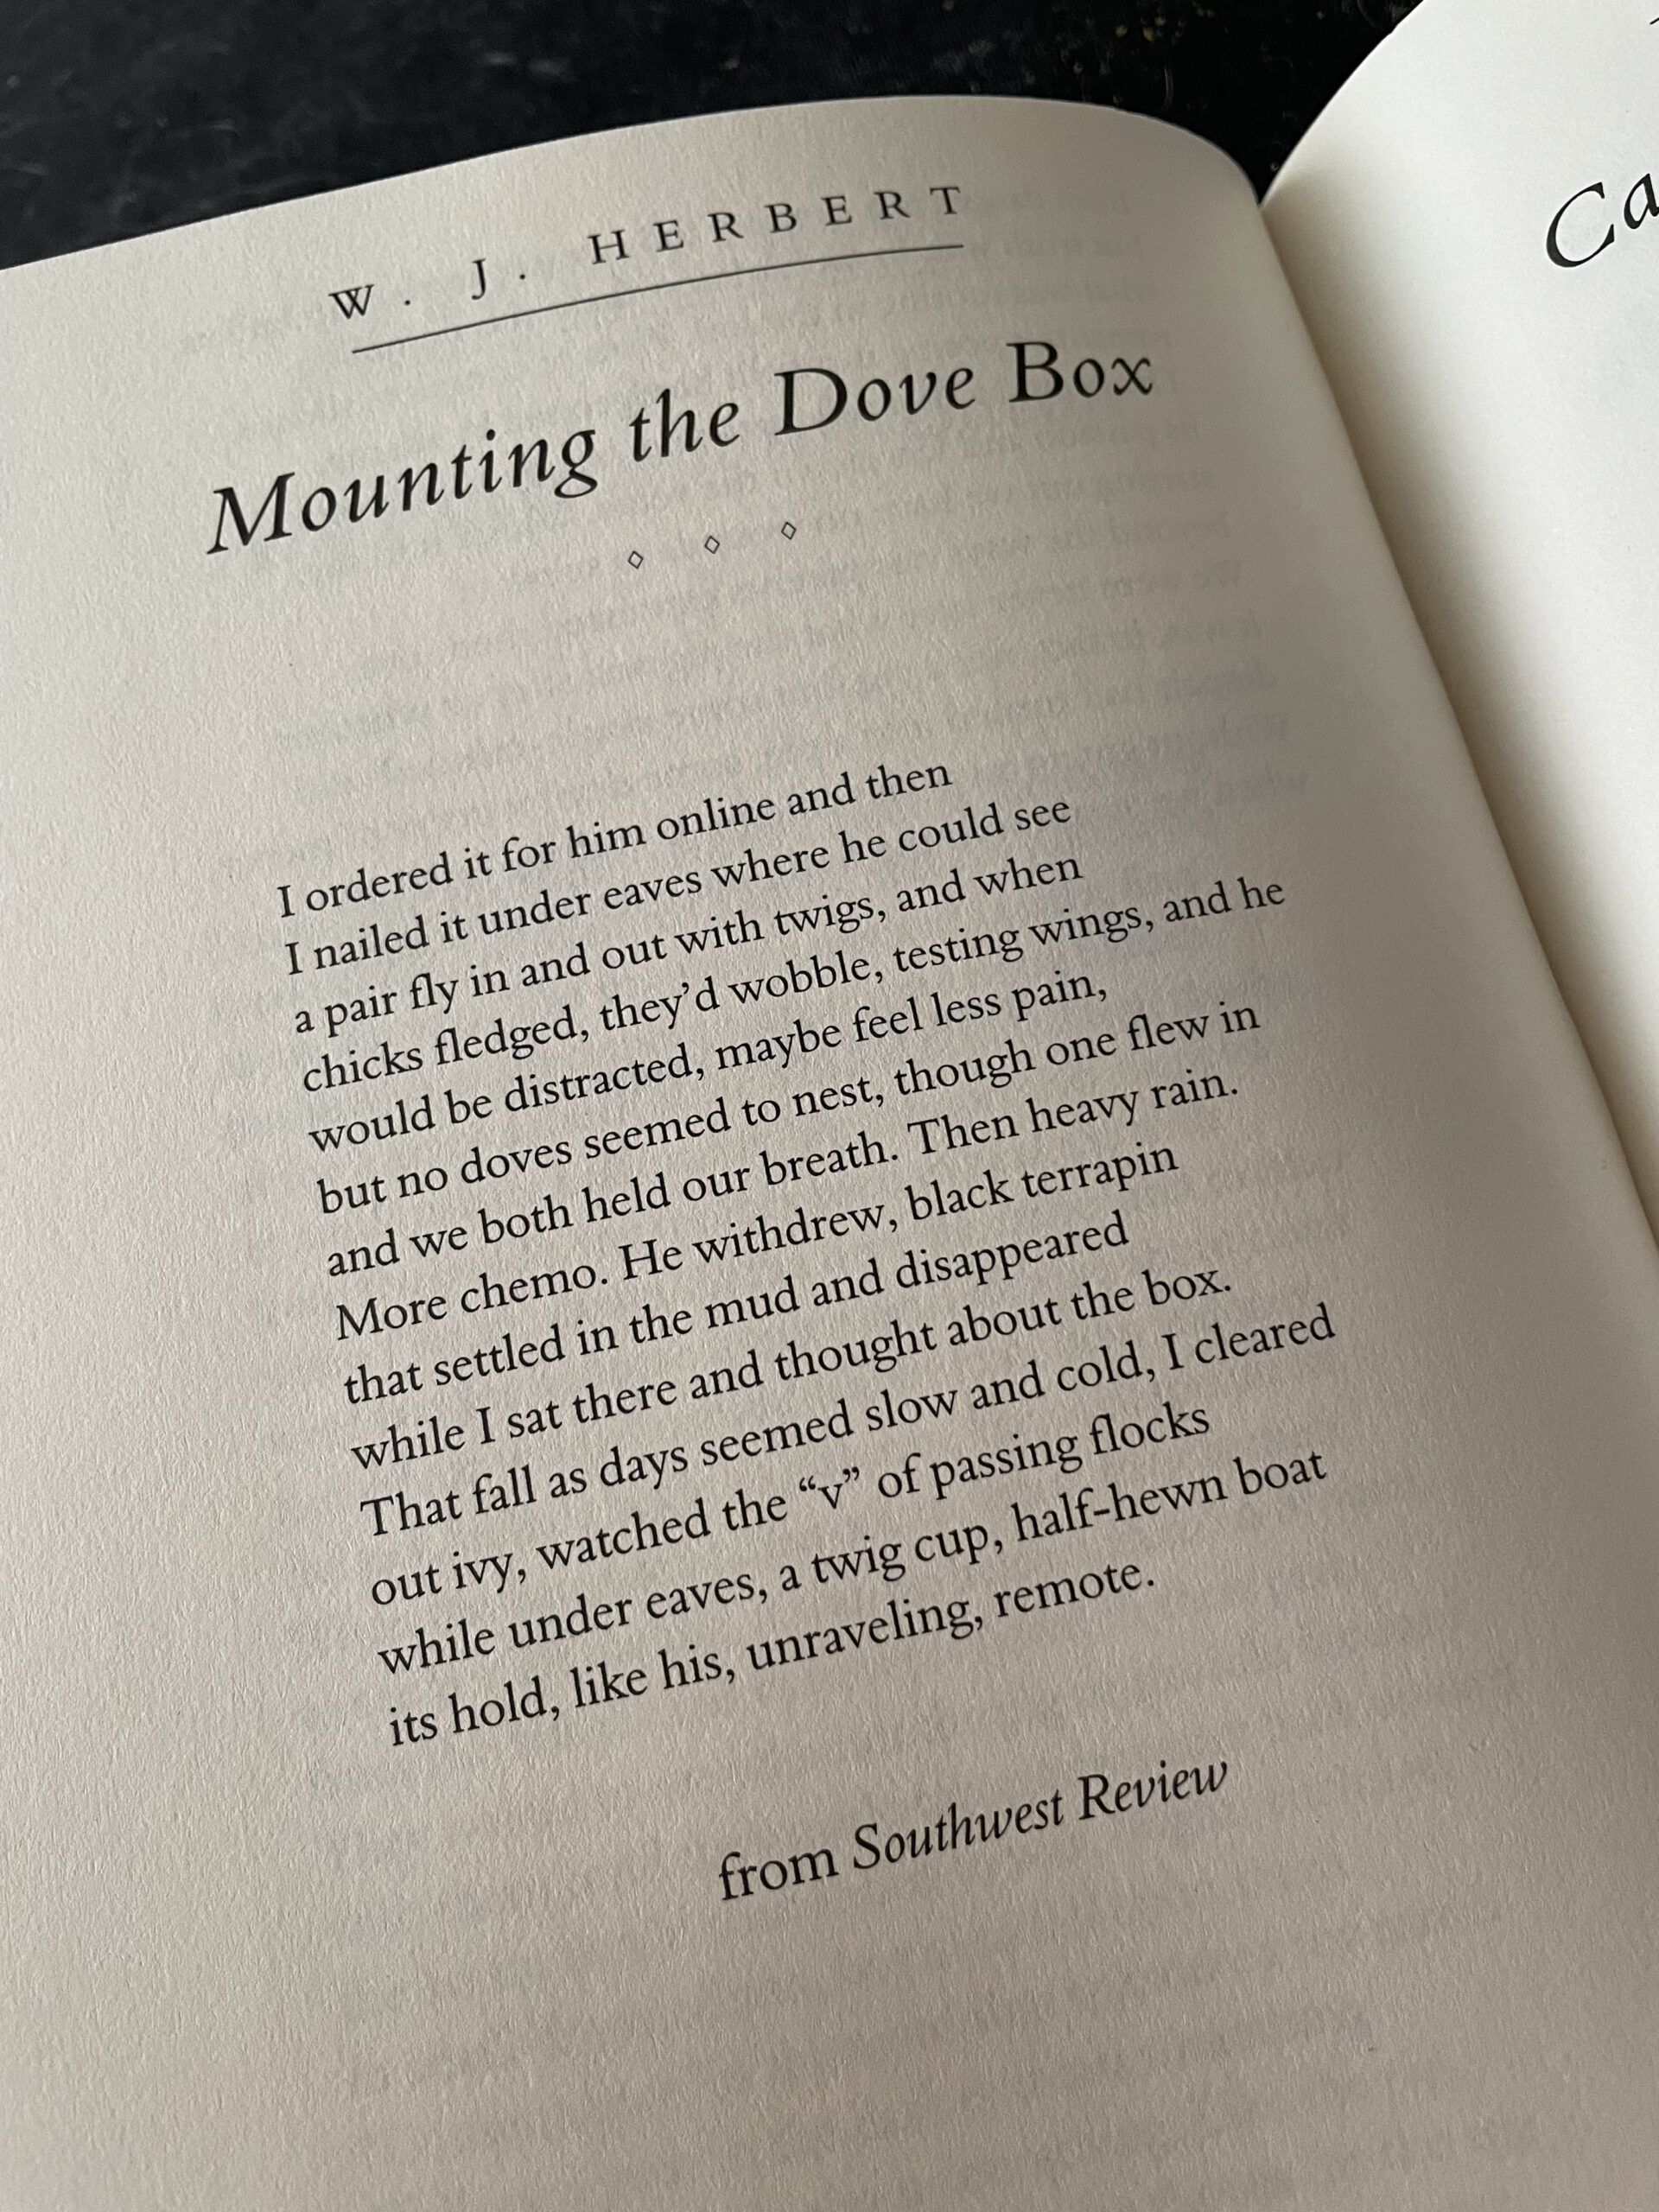 image of Mounting the Dove Box sonnet from WJ Herbert